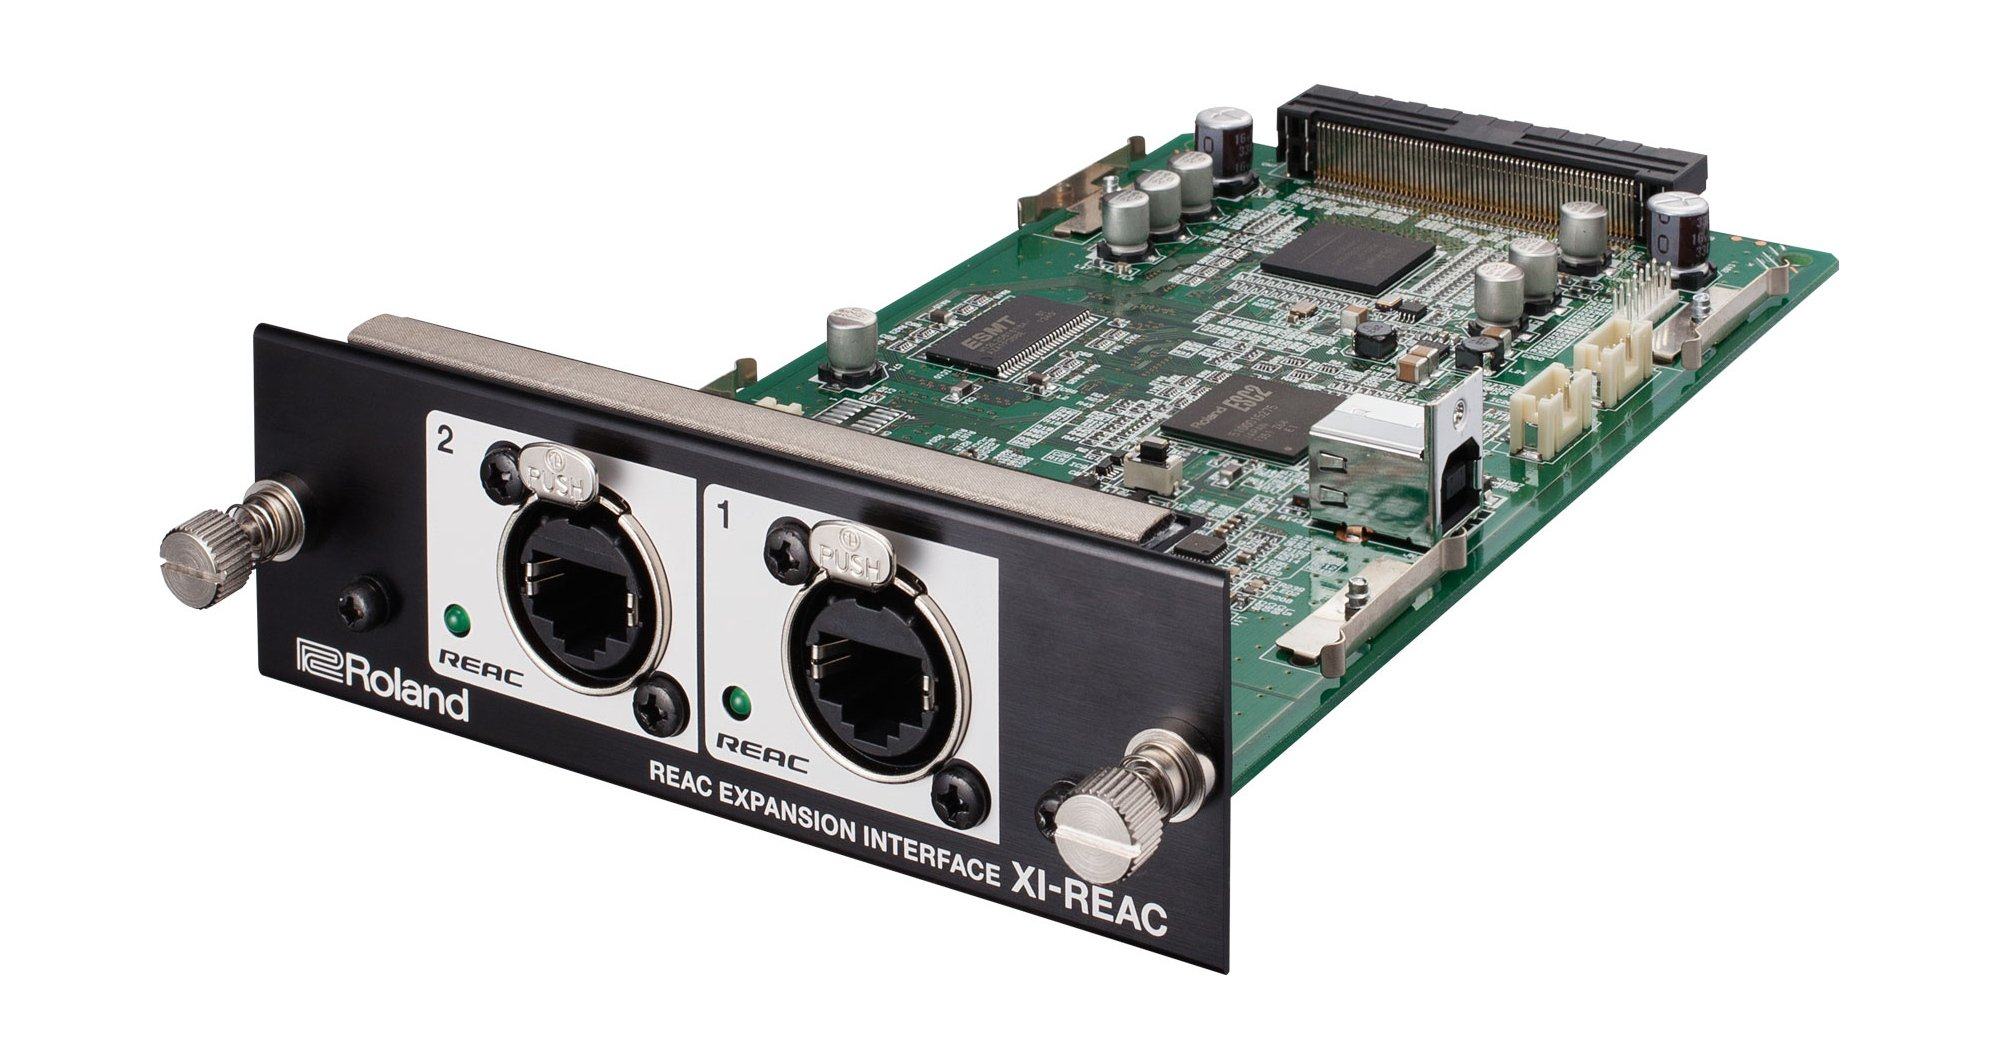 REAC Expansion Interface Card